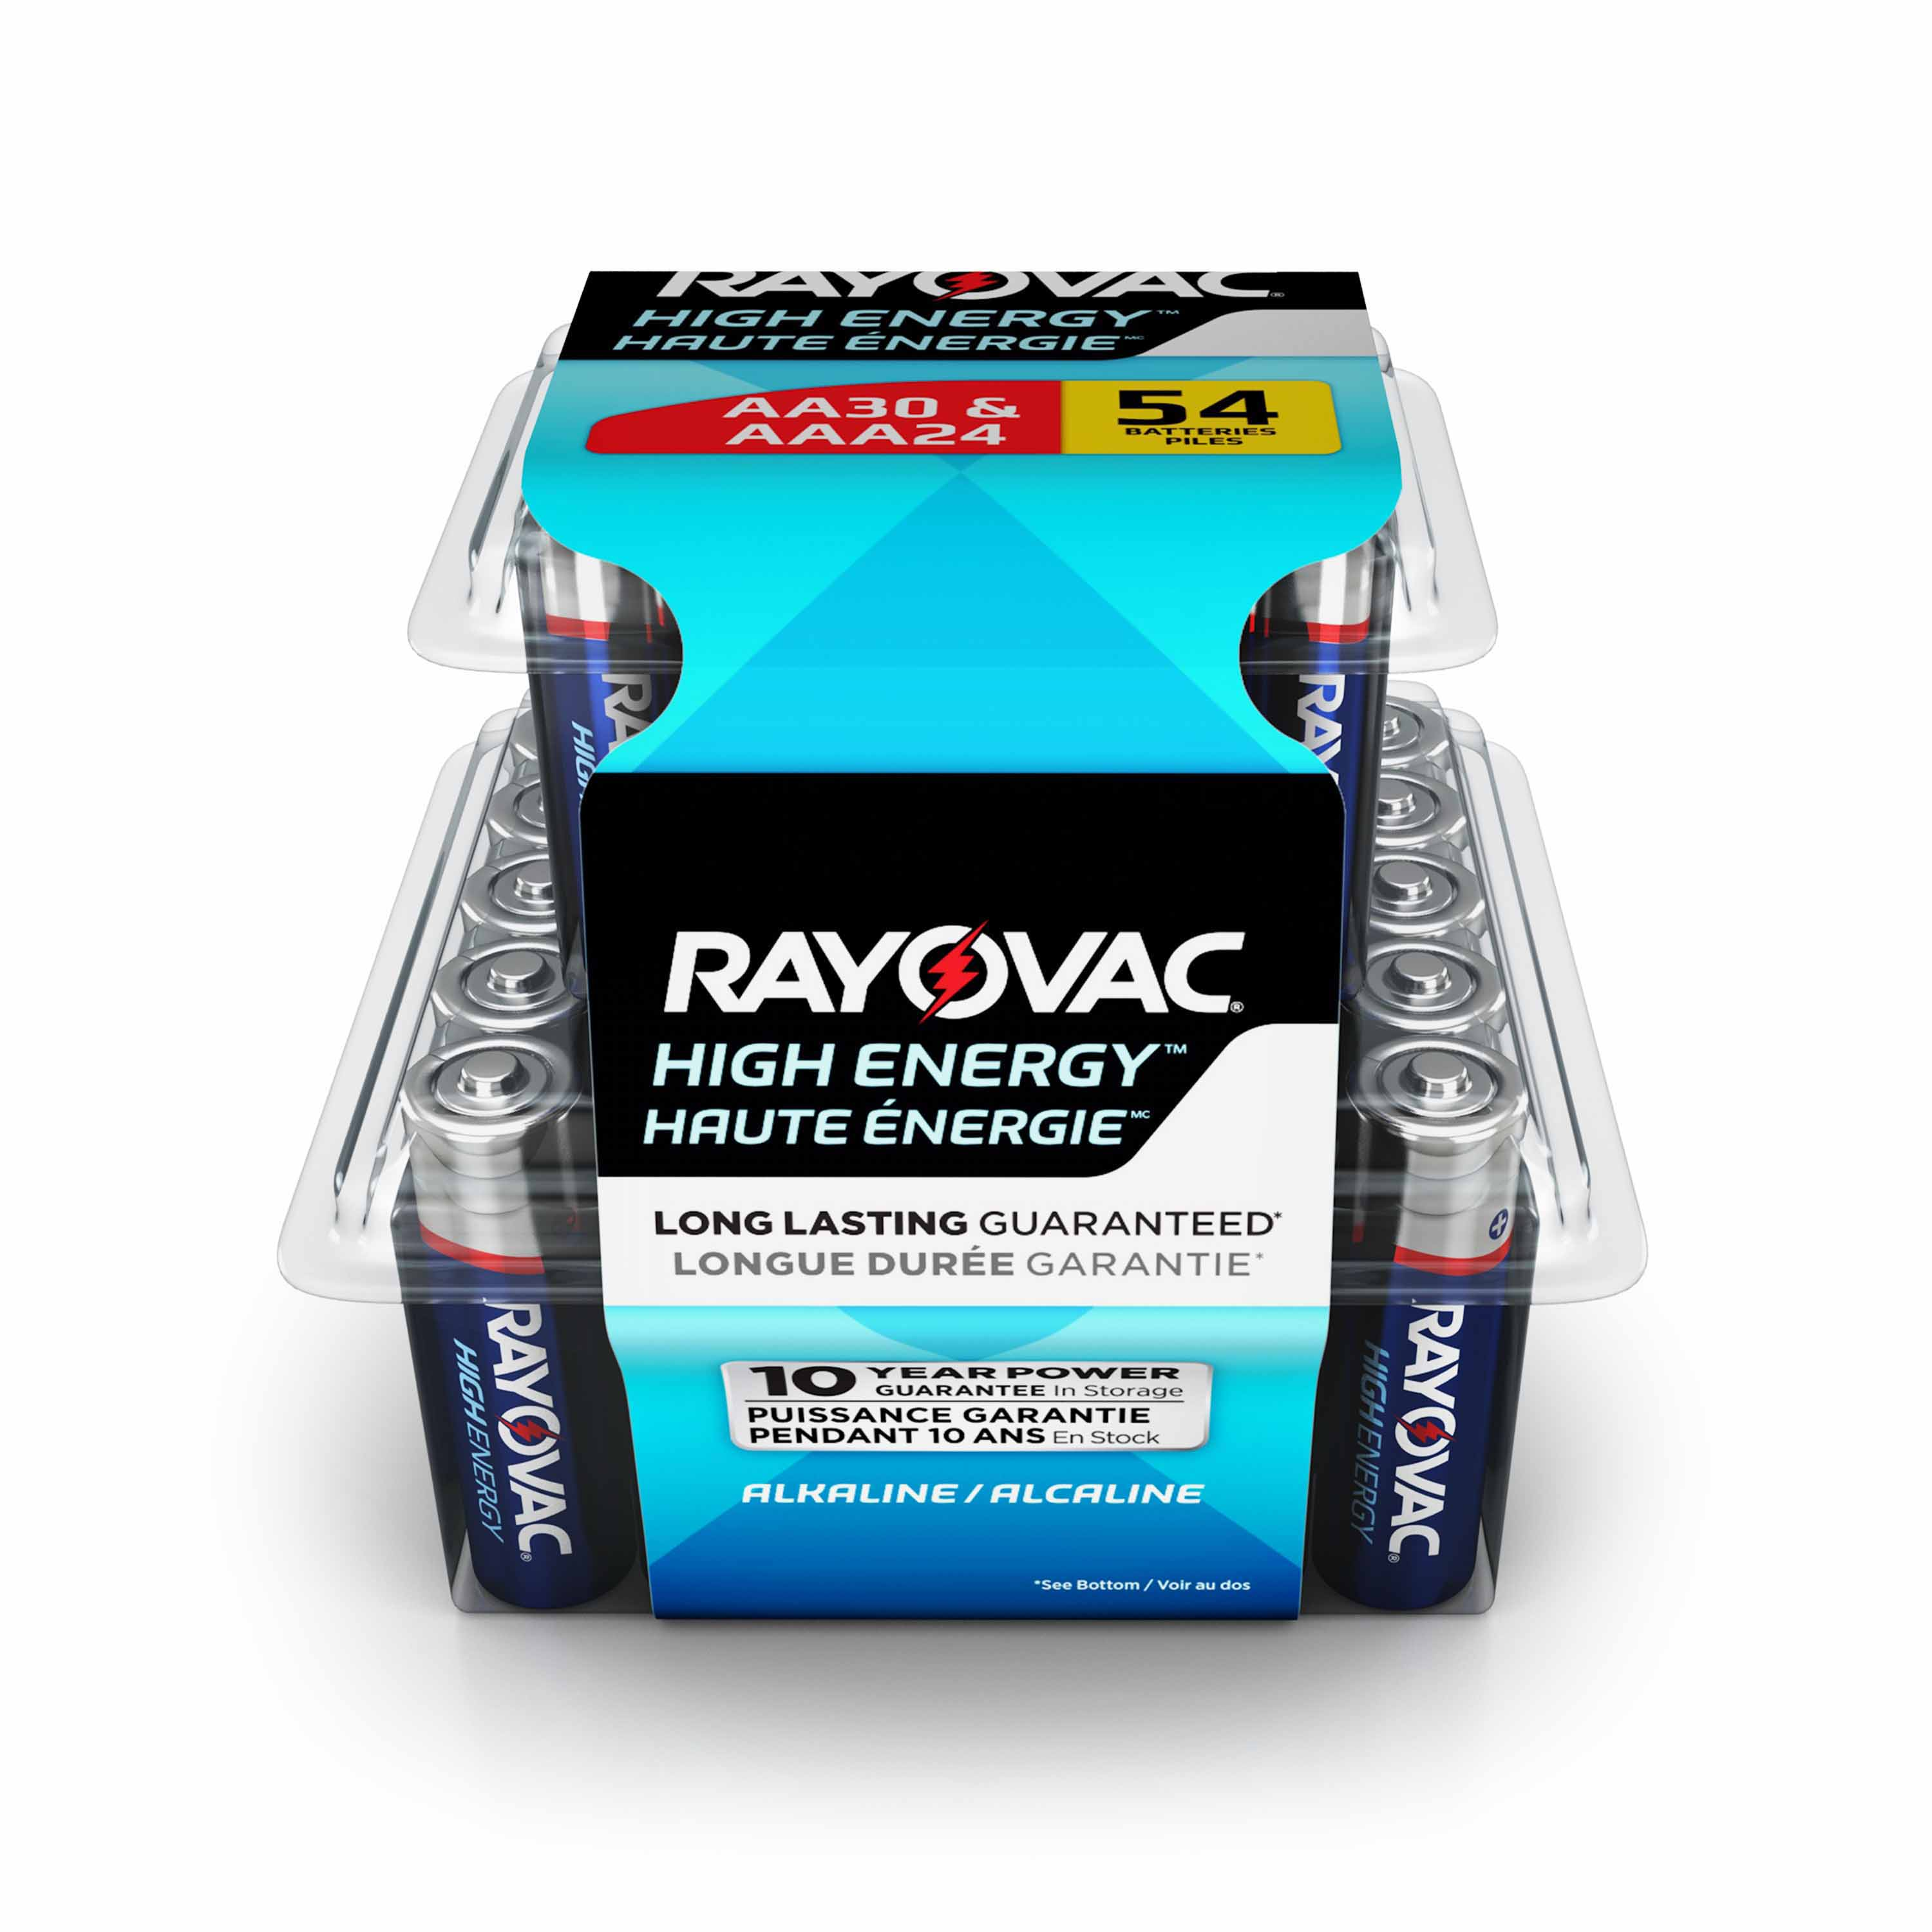 Rayovac High Energy Batteries 54- Multipack AA & AAA Batteries, 30 AA Batteries Plus 24 AAA Batteries, AL-54PP GENK